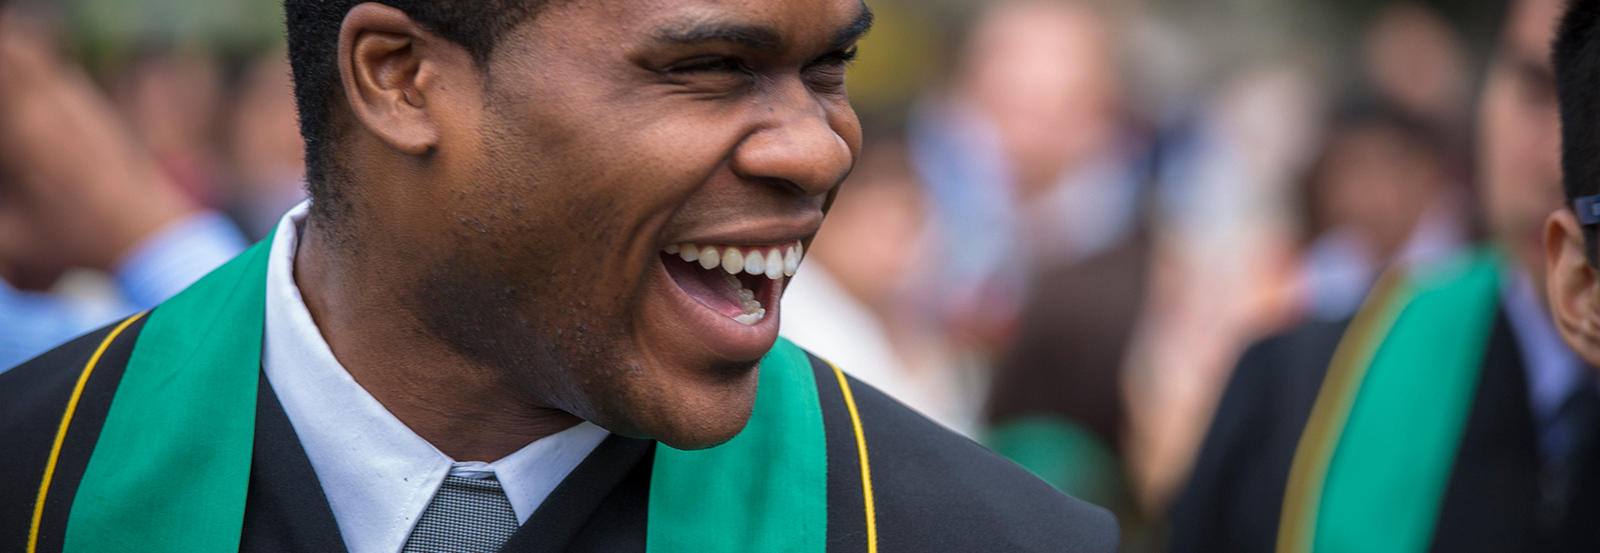 male student smiling at convocation